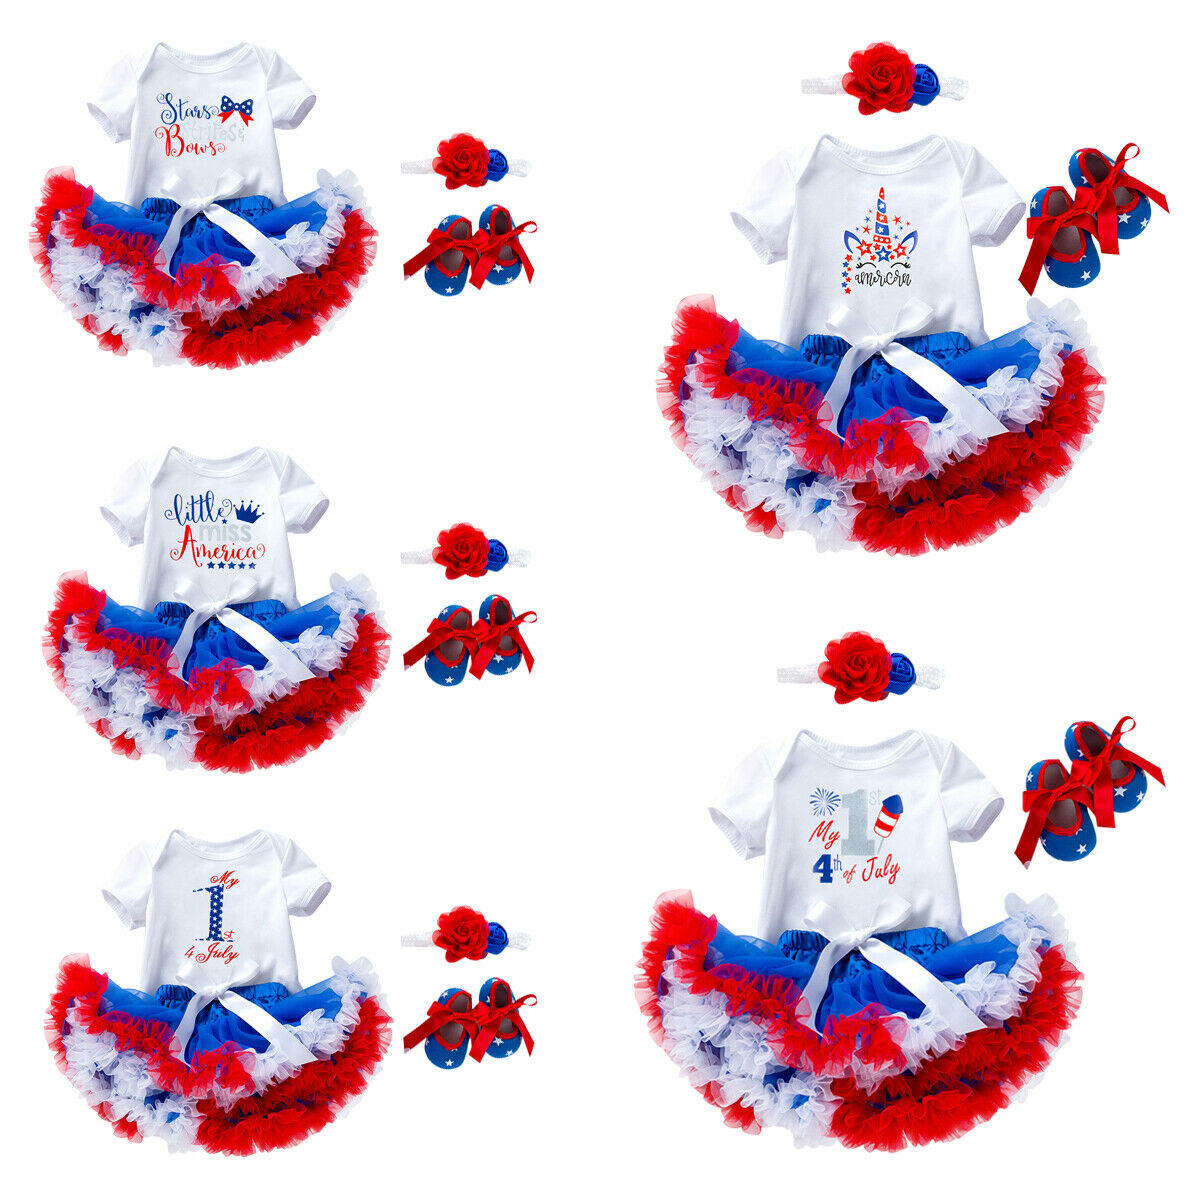 Unicorn Fancy My First 4th of July Romper Tutu Skirt Clothes Set for Baby Girls